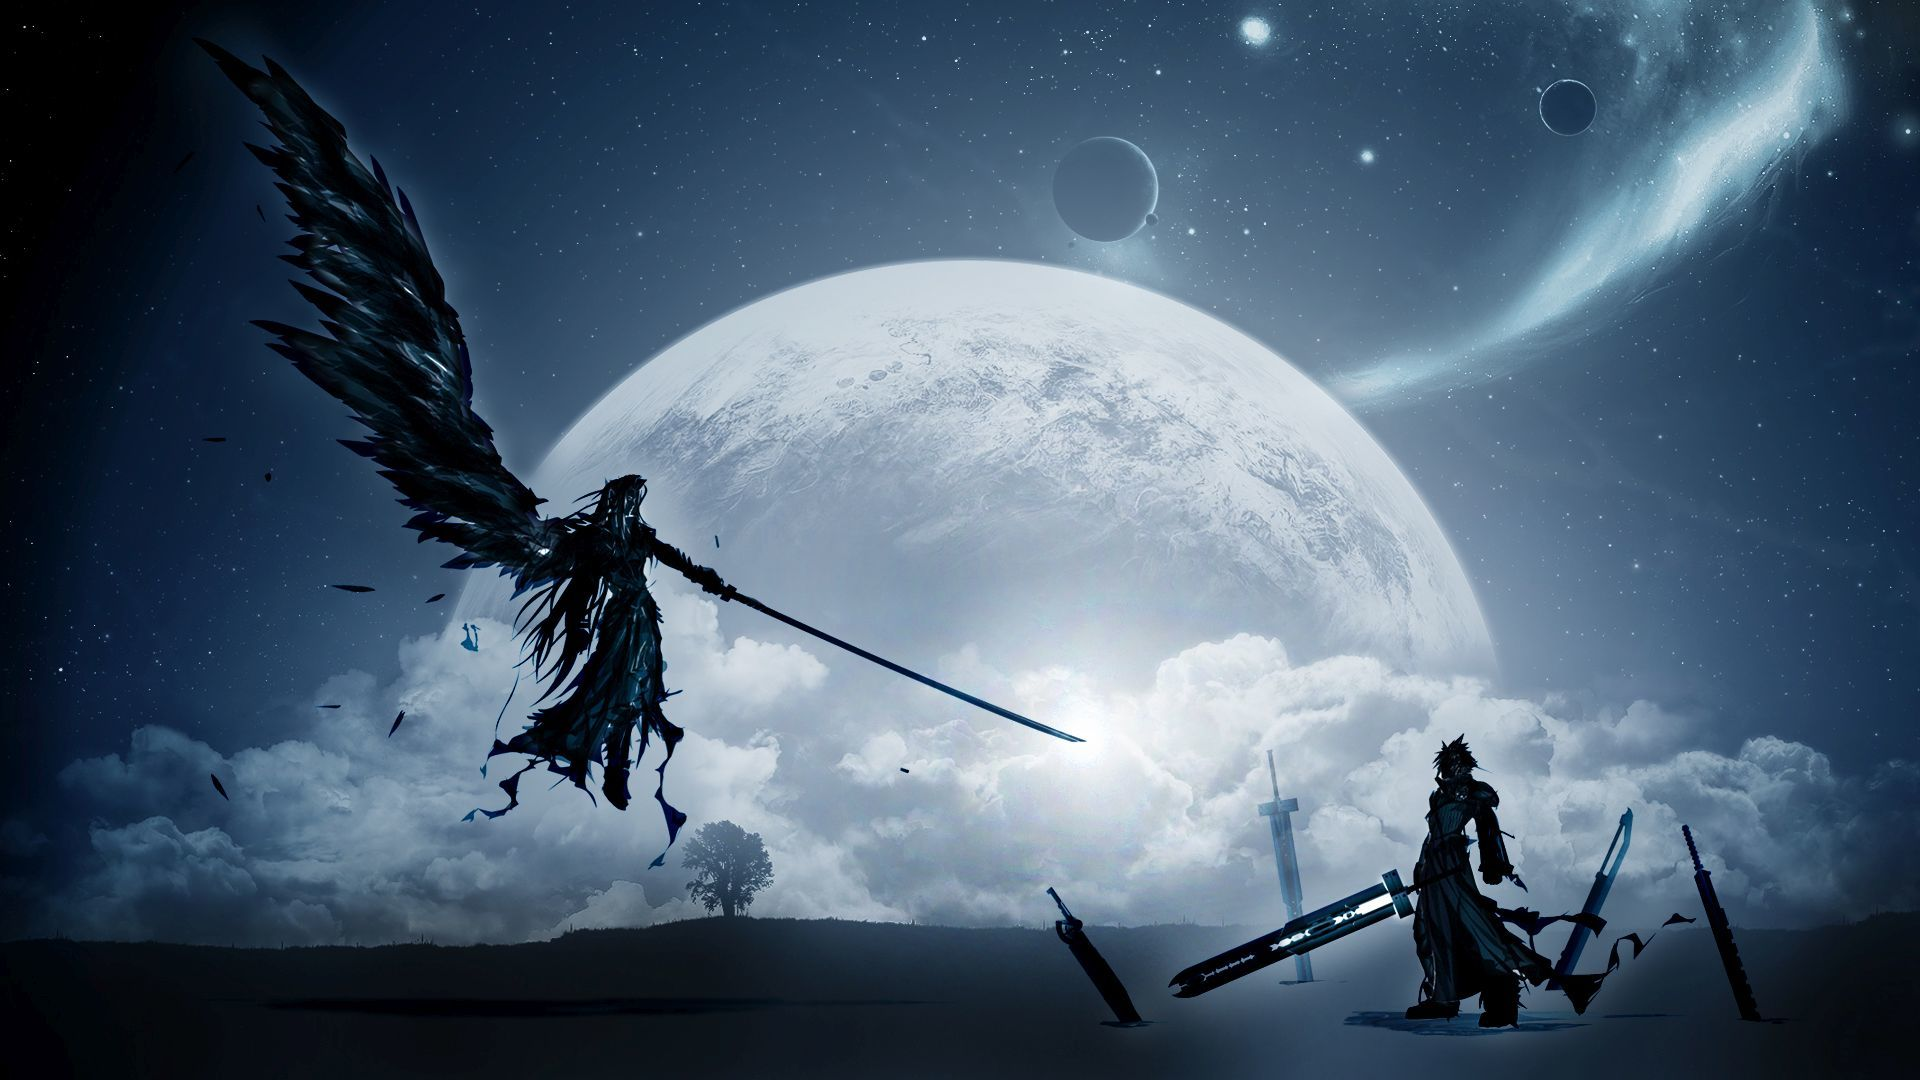 Free Download 9 Final Fantasy Vii Desktop Wallpapers Wppsource